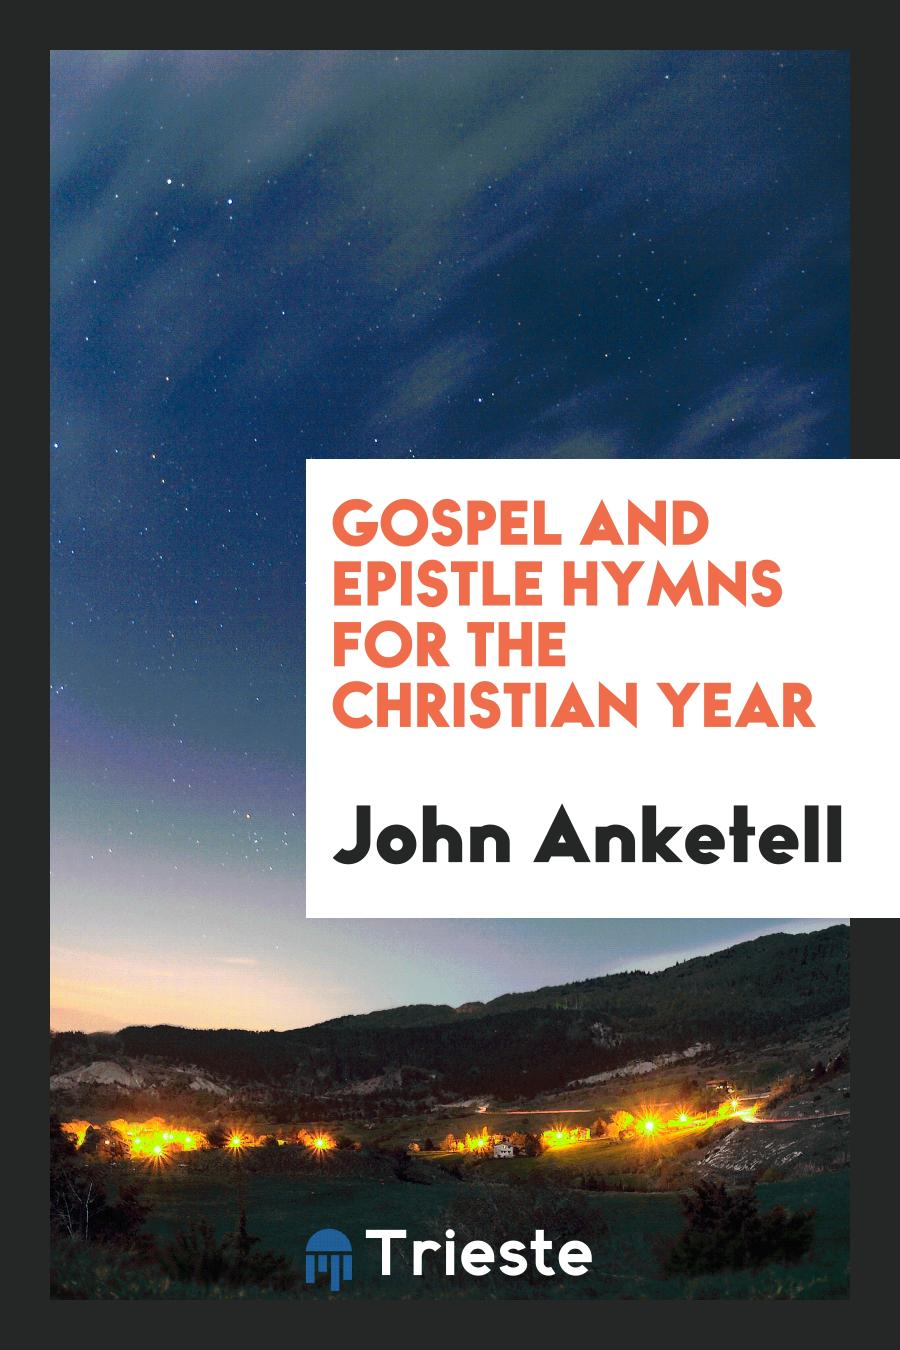 Gospel and Epistle Hymns for the Christian Year